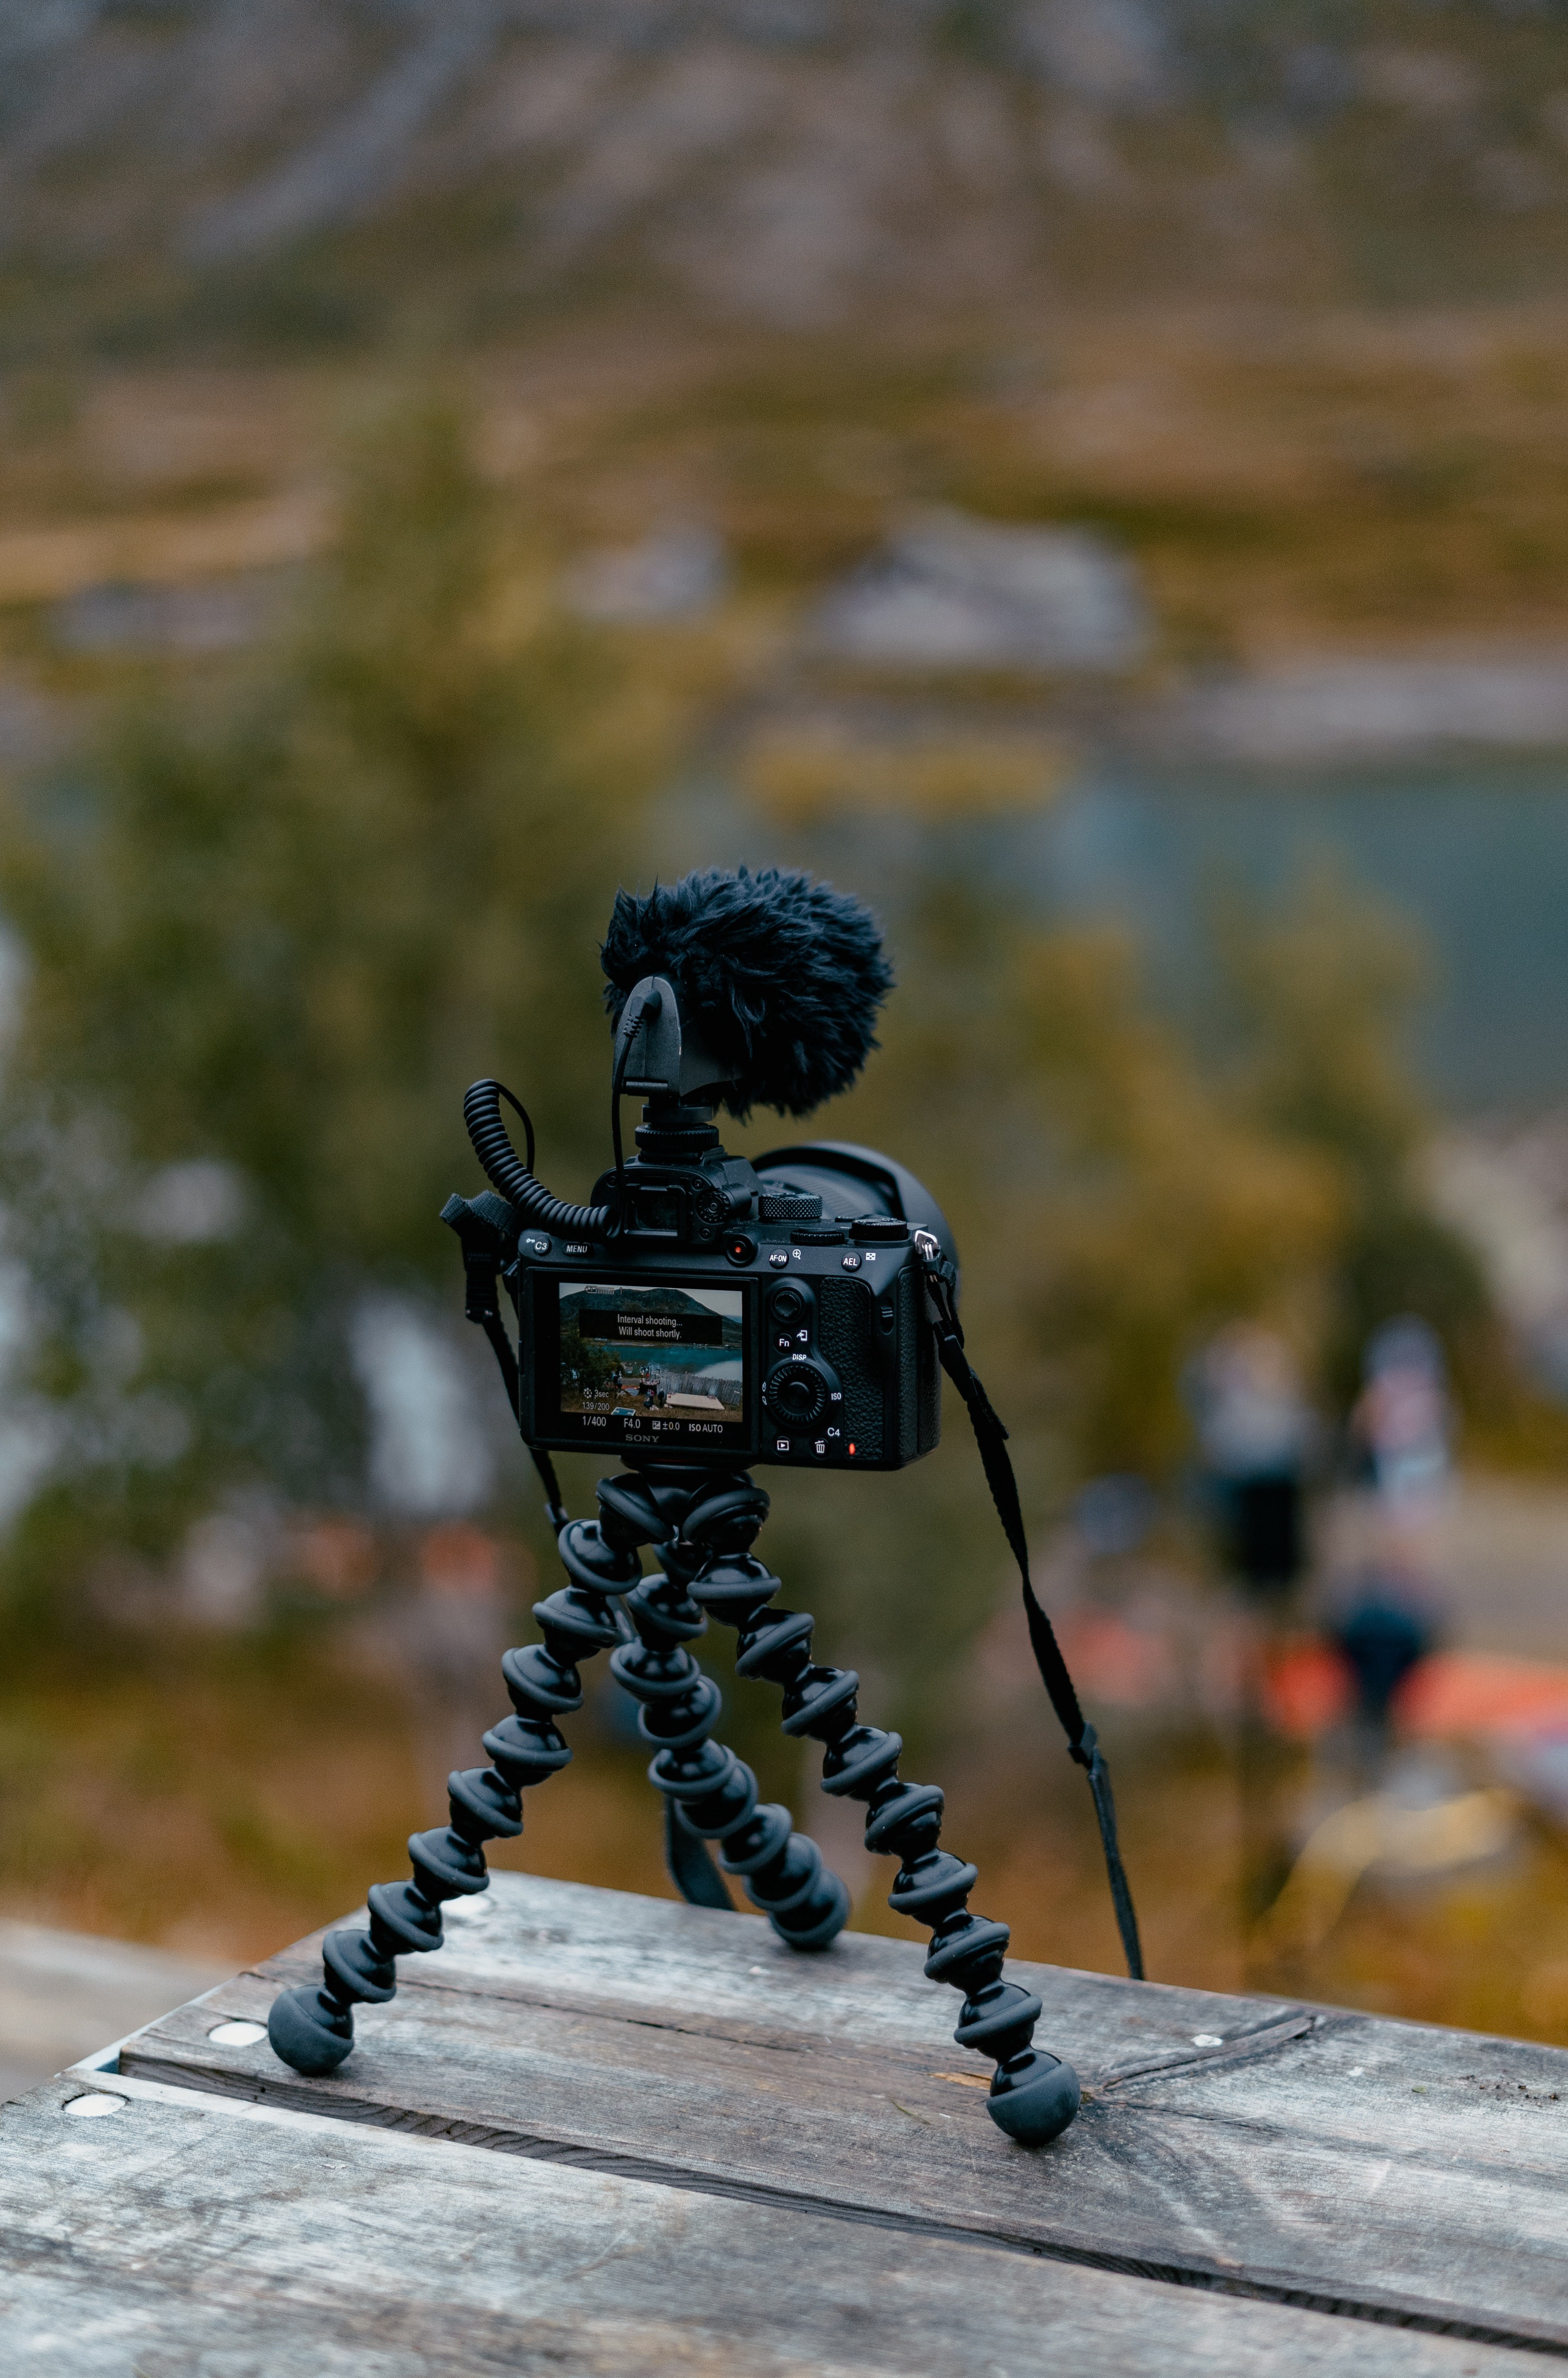 Camera and microphone on a tripod